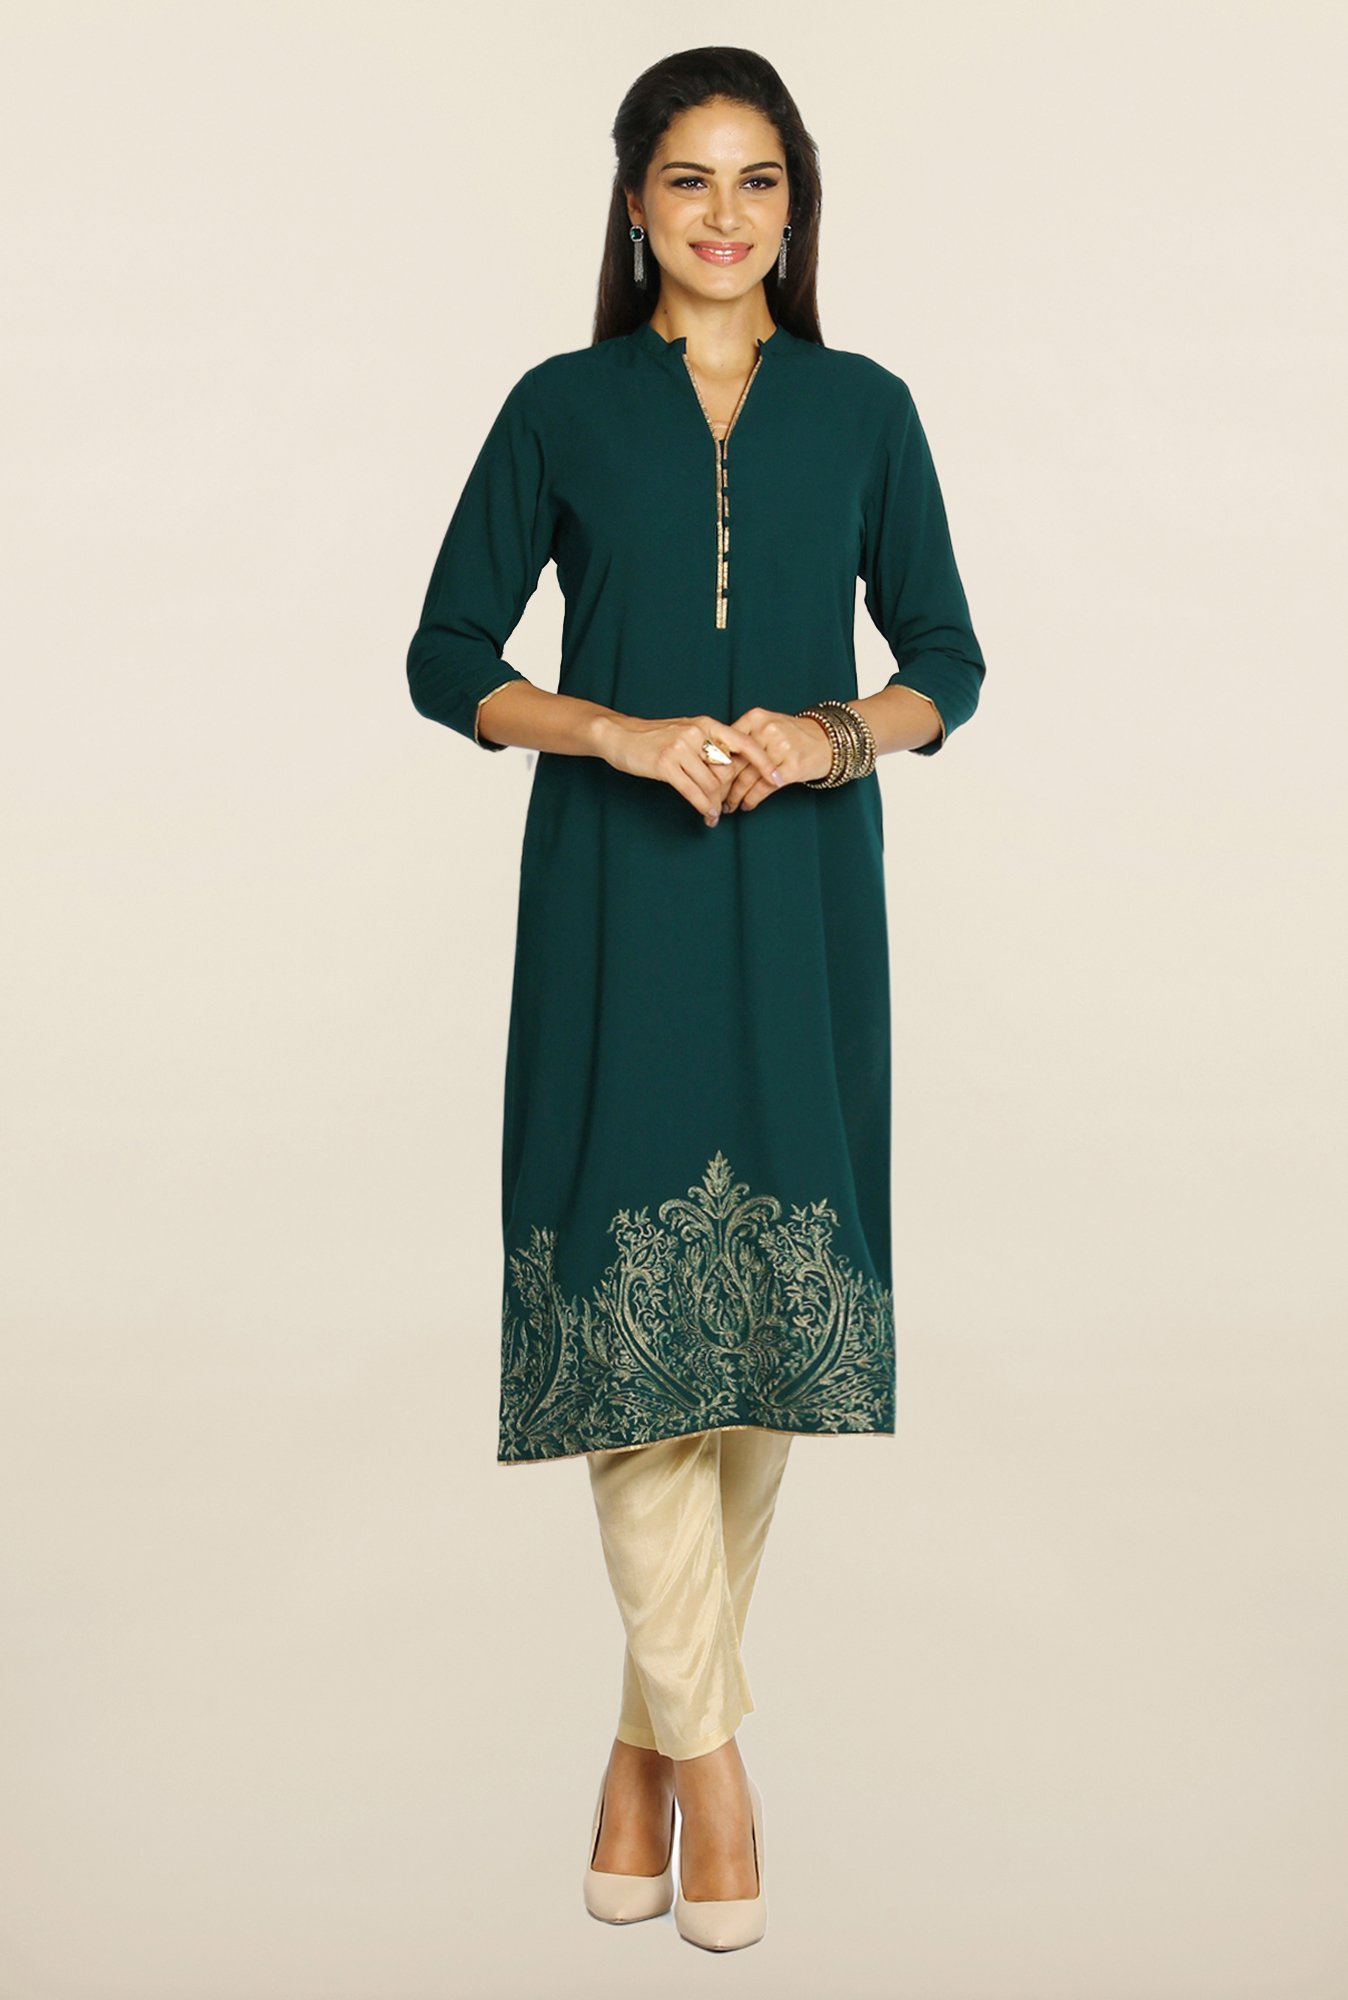 Soch Green & Beige Georgette Suit Set